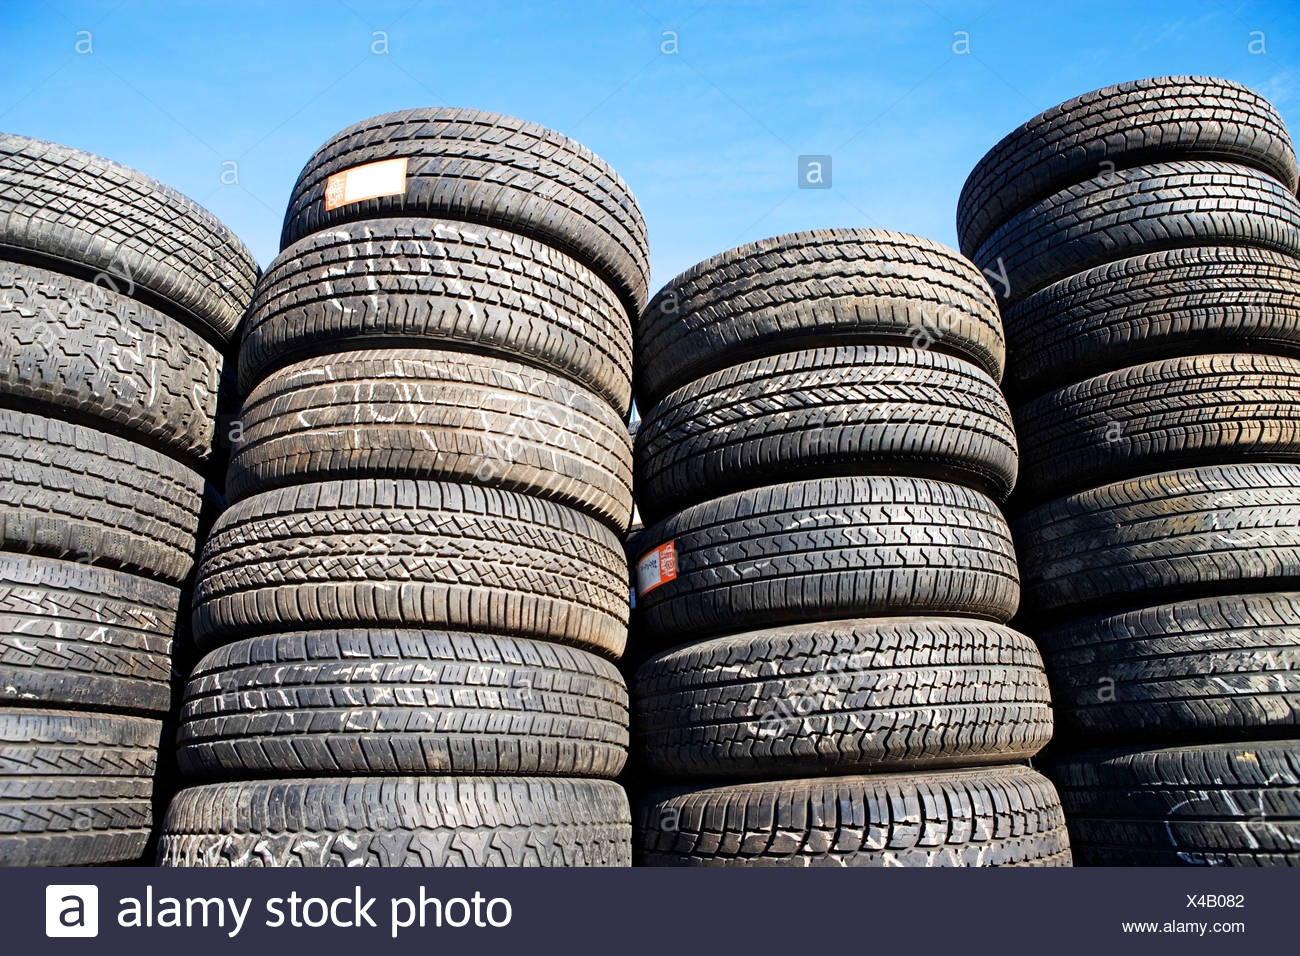 used car tires - Stock Image